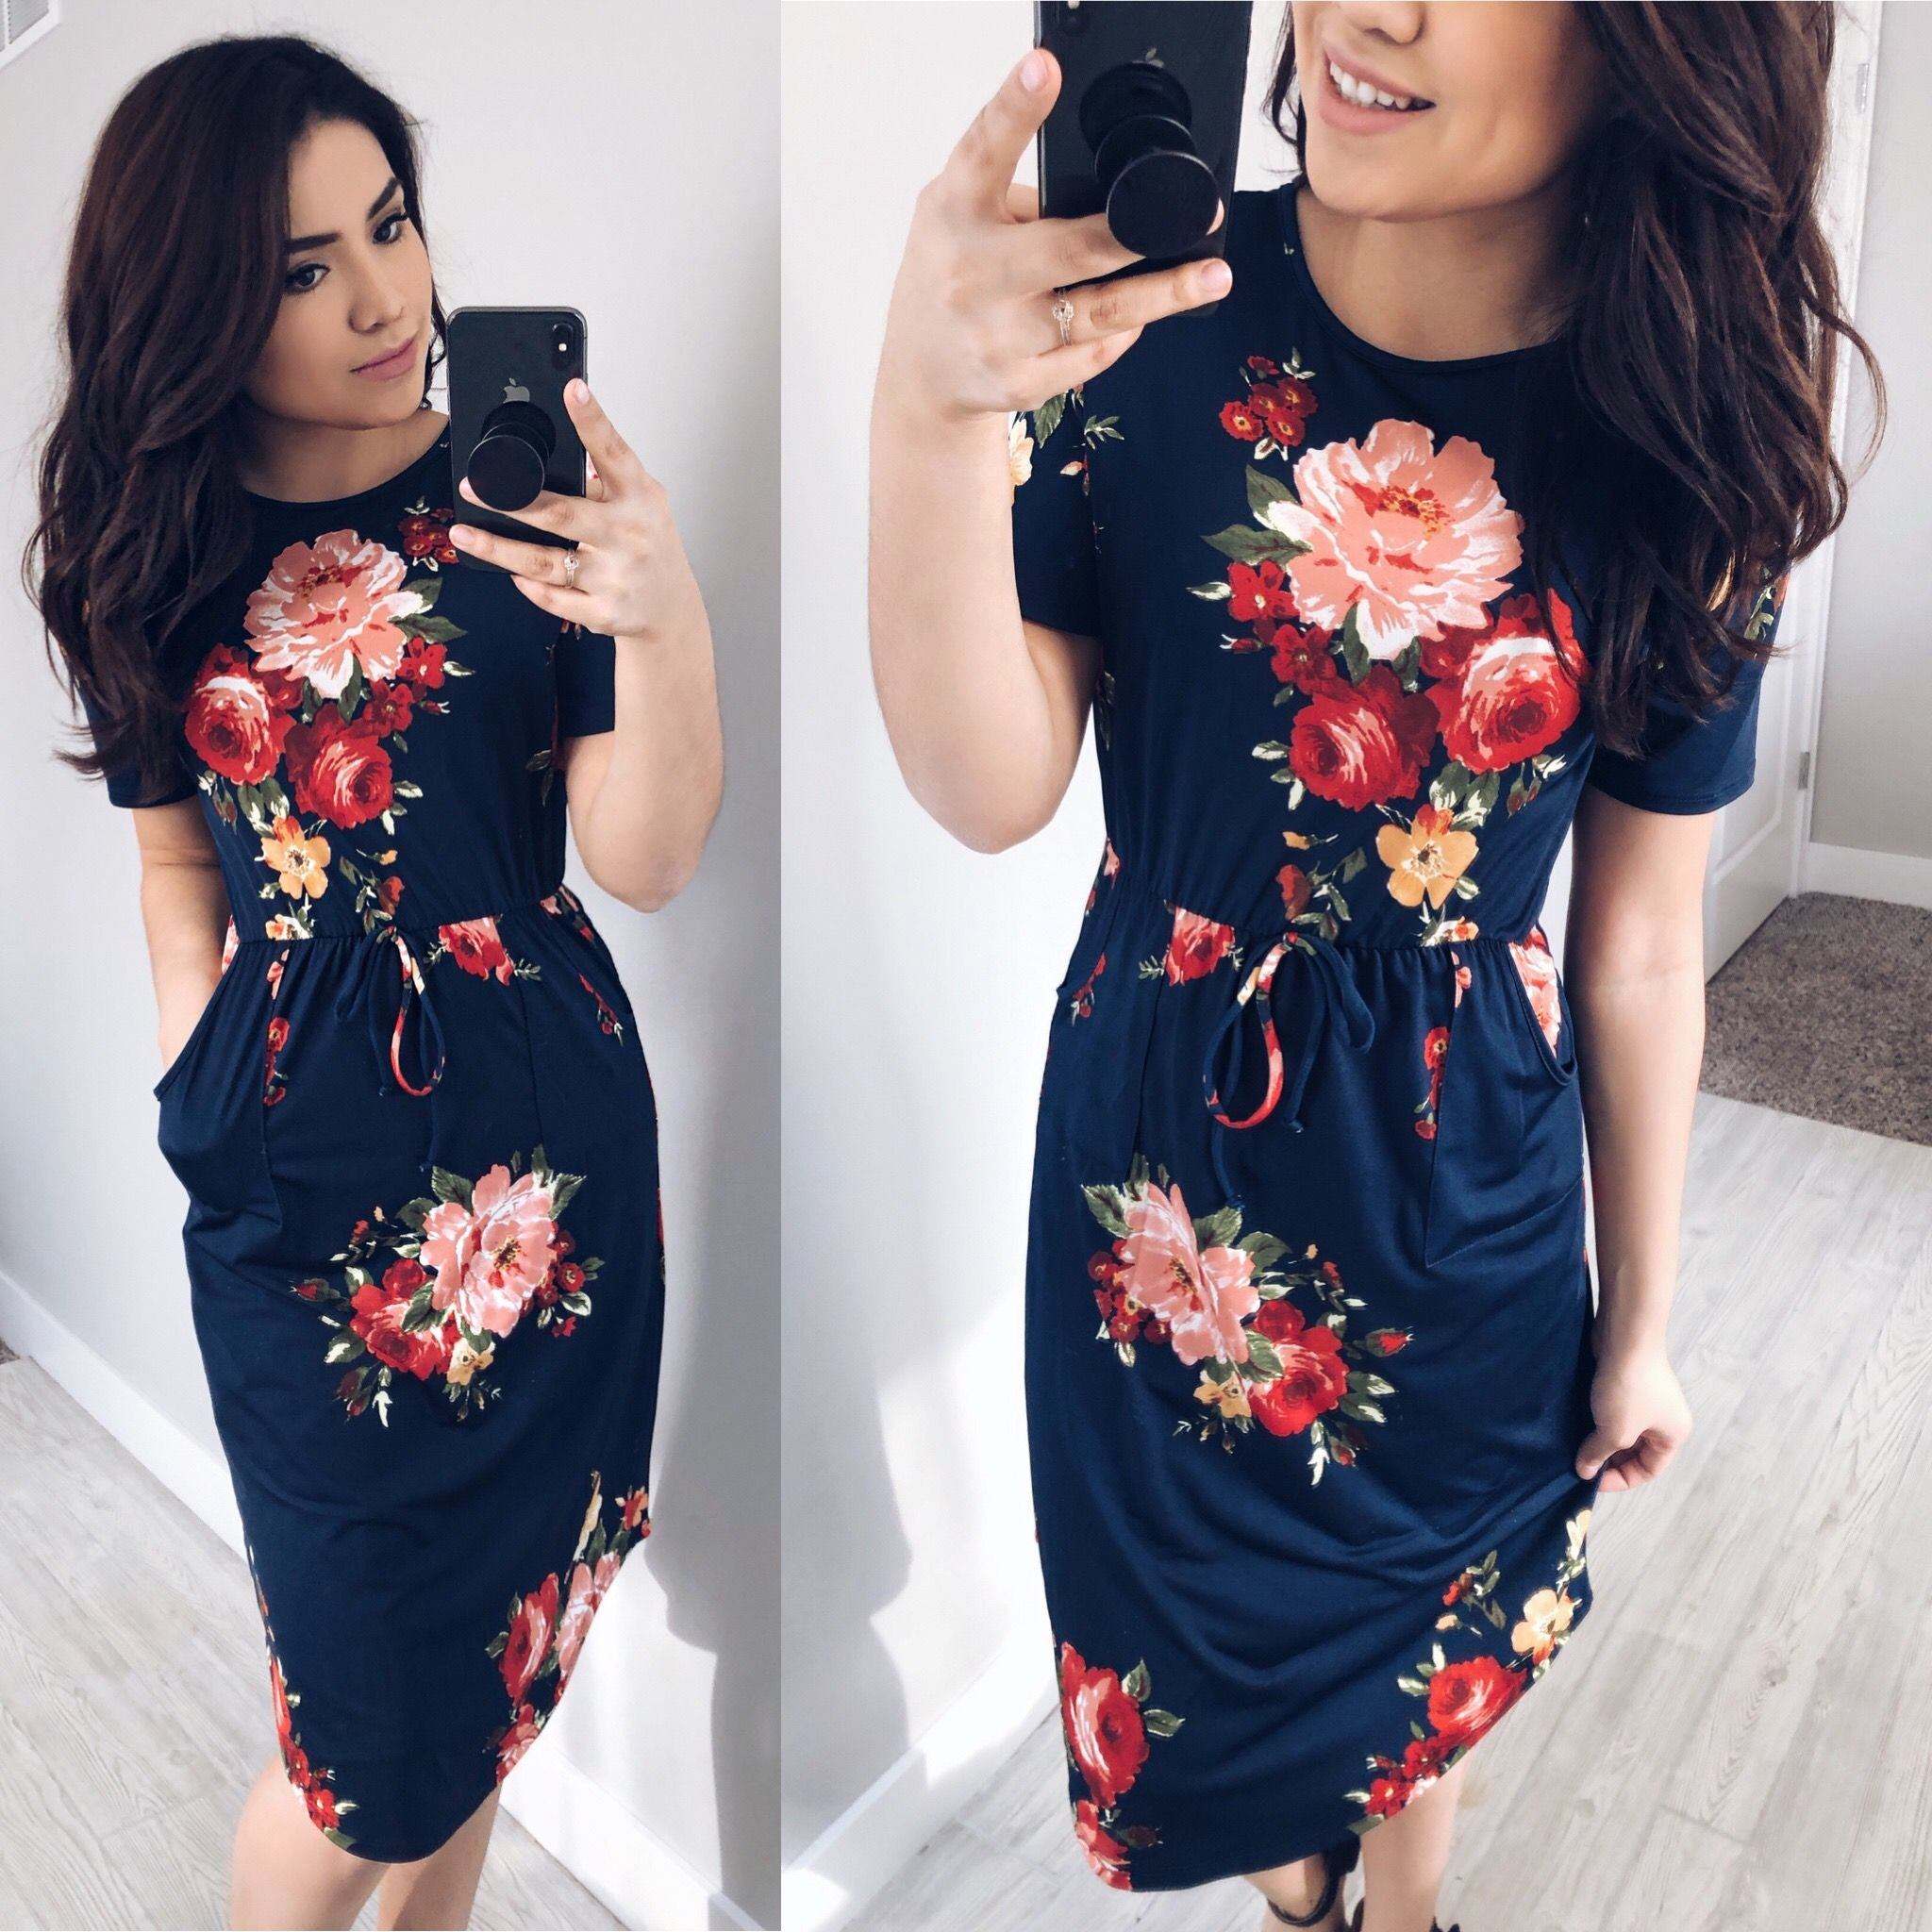 @thedarlingstyle Navy Floral Midi Dress | Floral Dress | Modest Fashion  Skirt Style. Modest Fashion. Getting Into The Spring Chic Style. Moda.